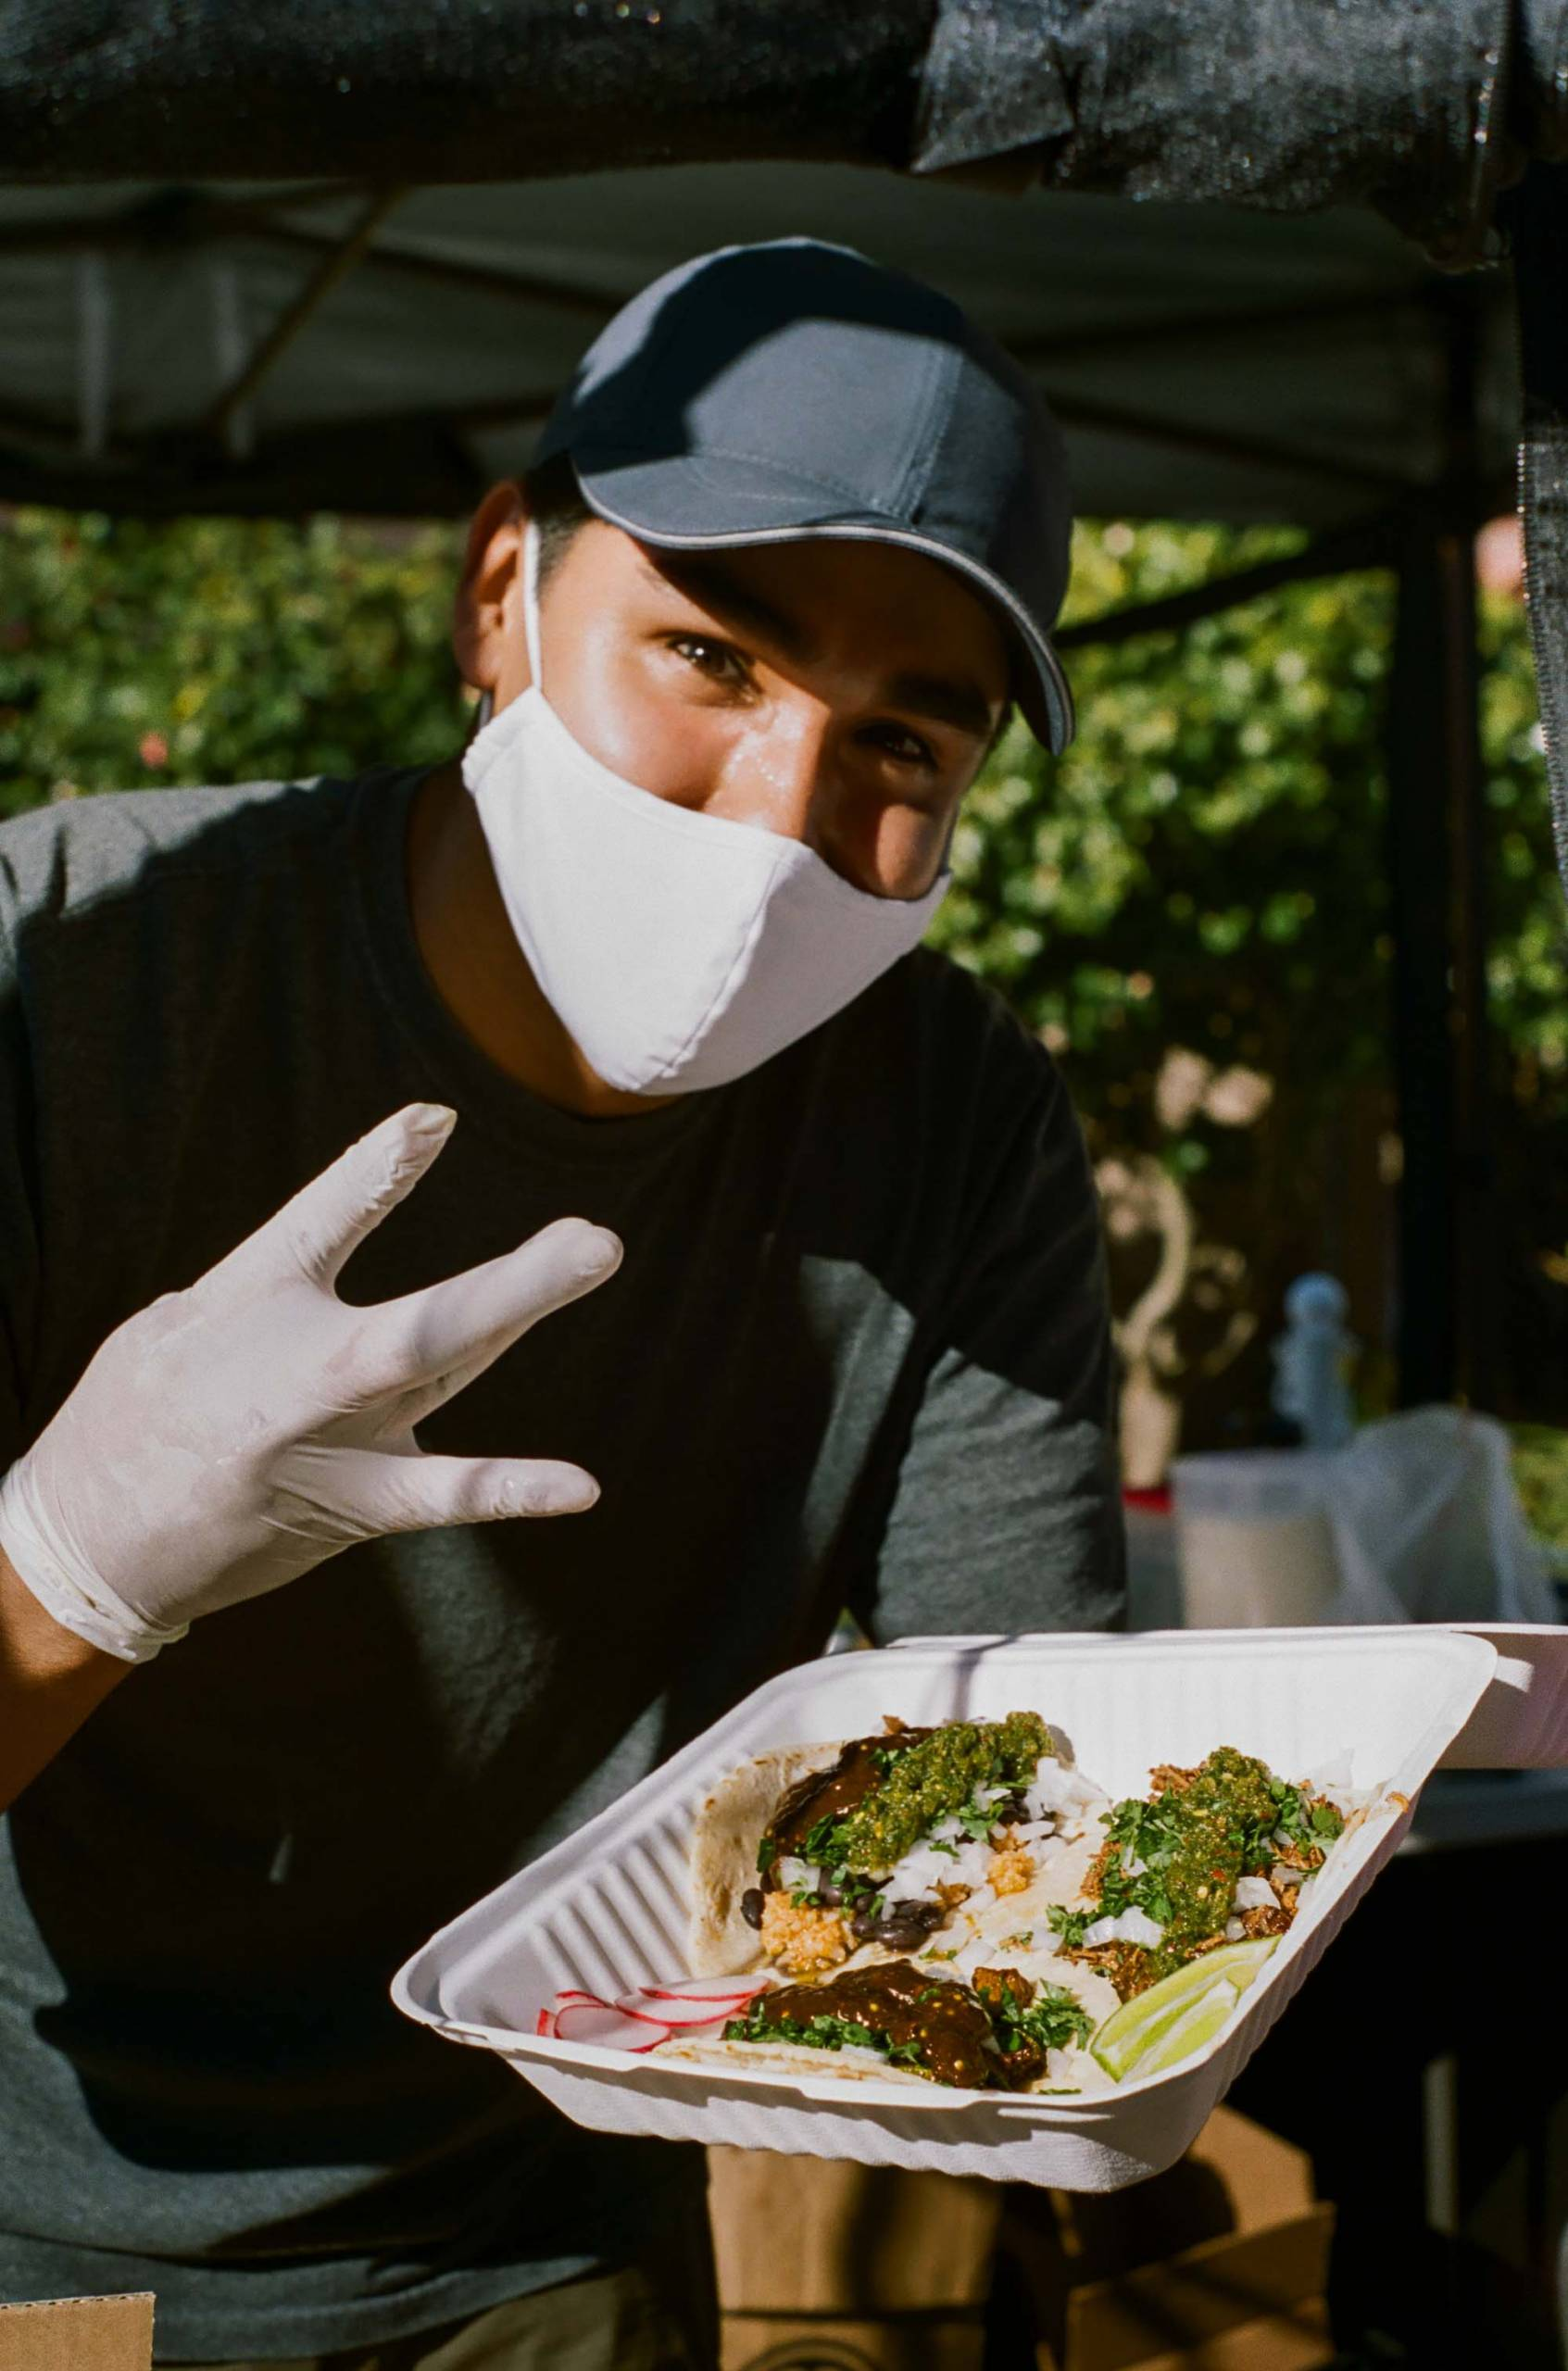 Nomar Ramirez serves up a box of tacos at his farmers market stand in the Outer Sunset